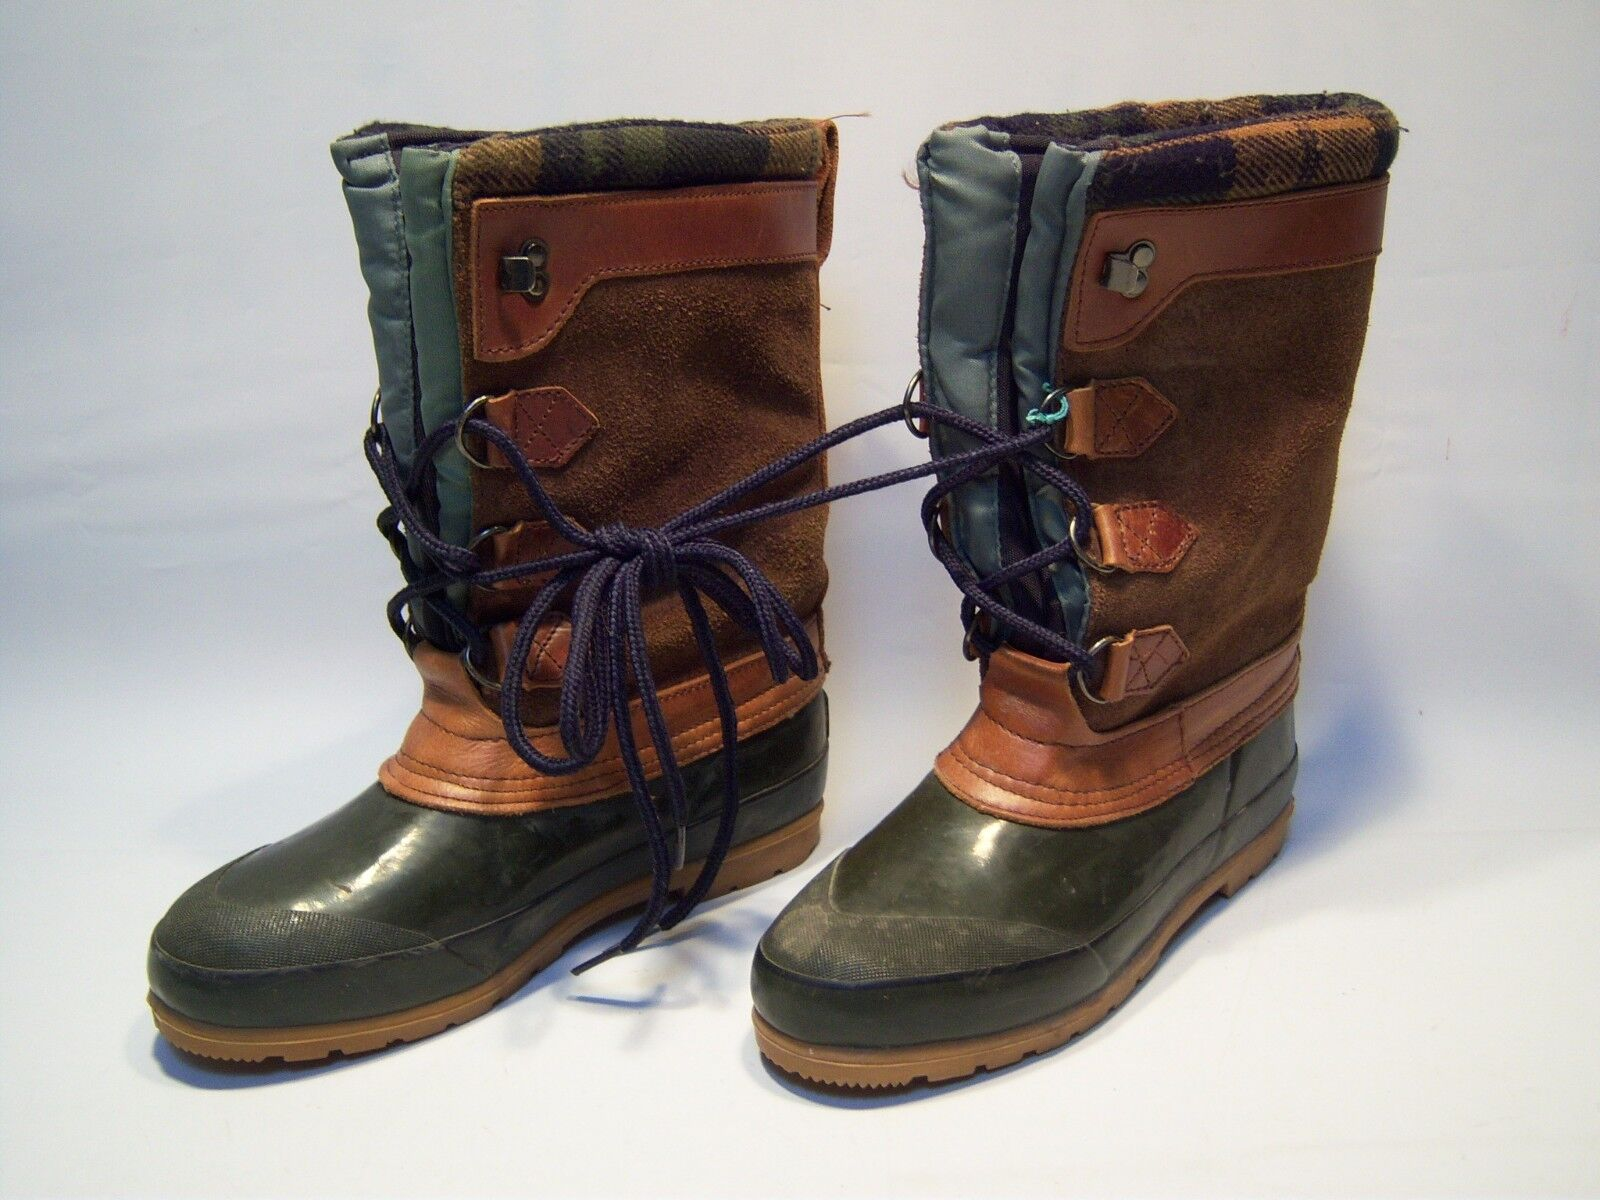 Vintage Trader Bay Weather Proof Hunting Boots Women's Size 7